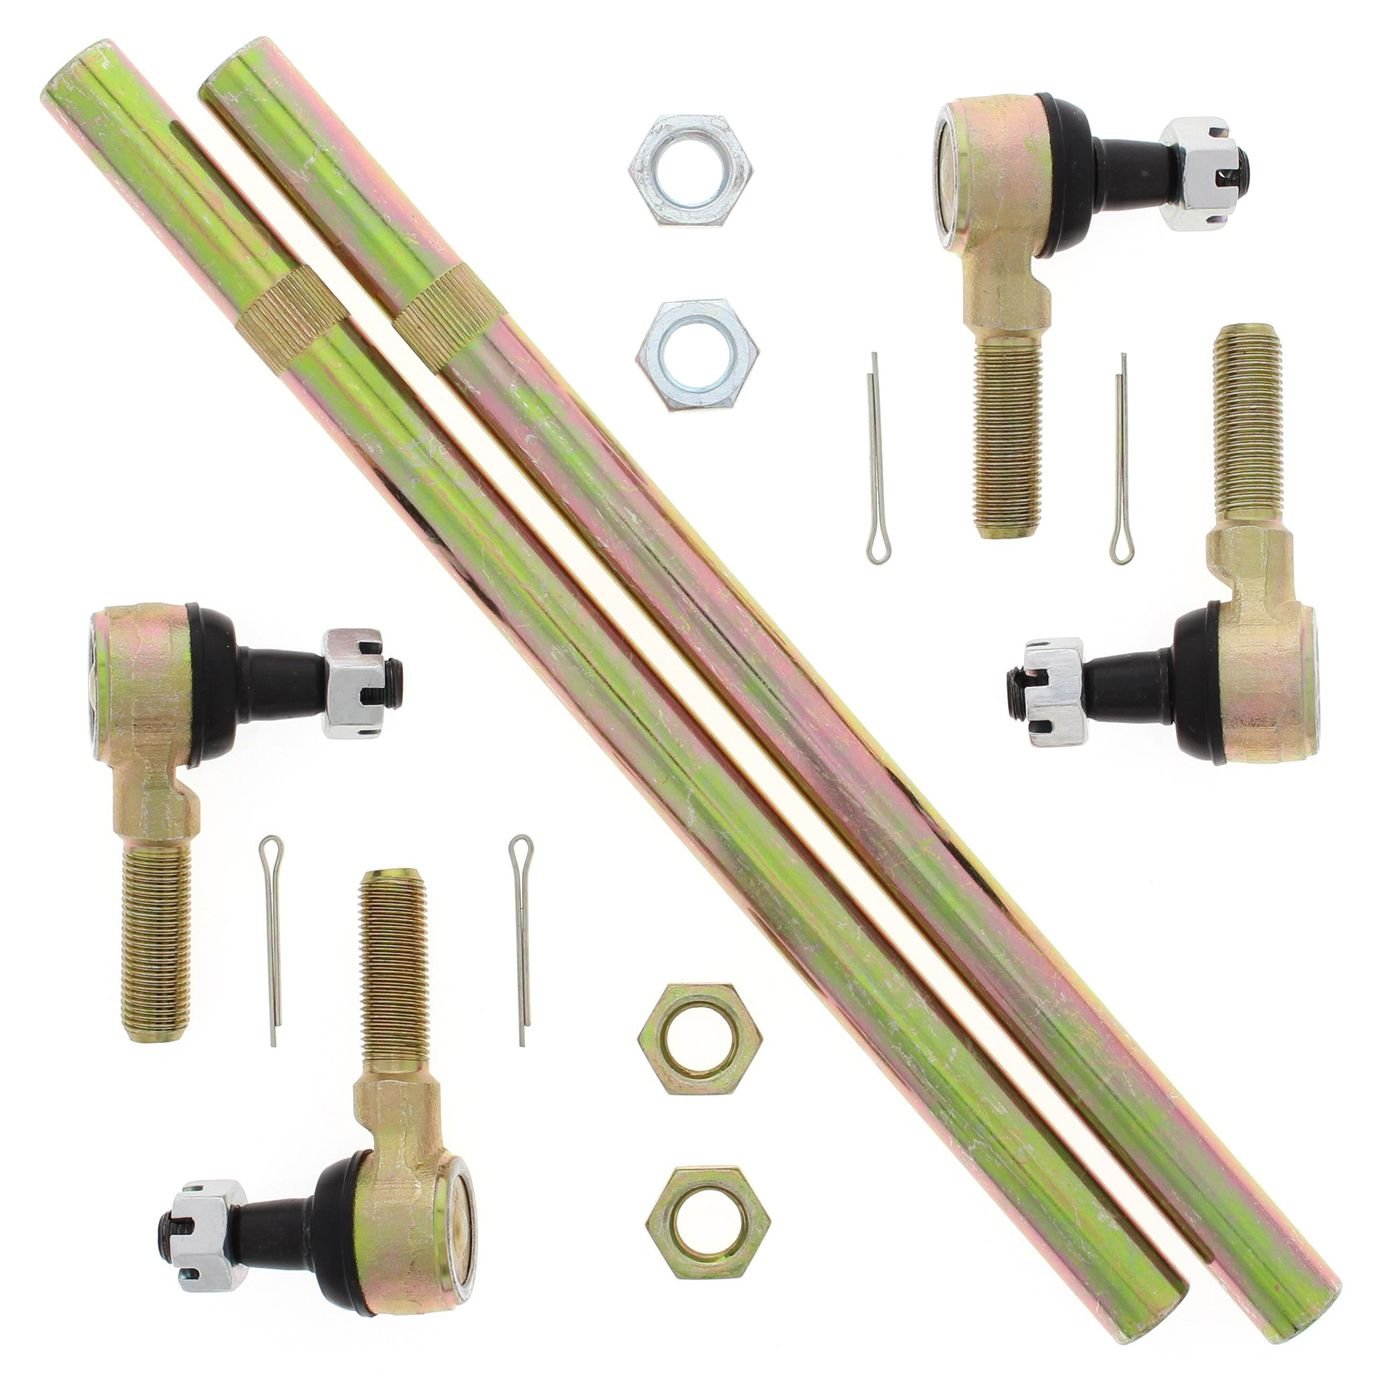 Wrp Tie Rod Kits - WRP521002 image